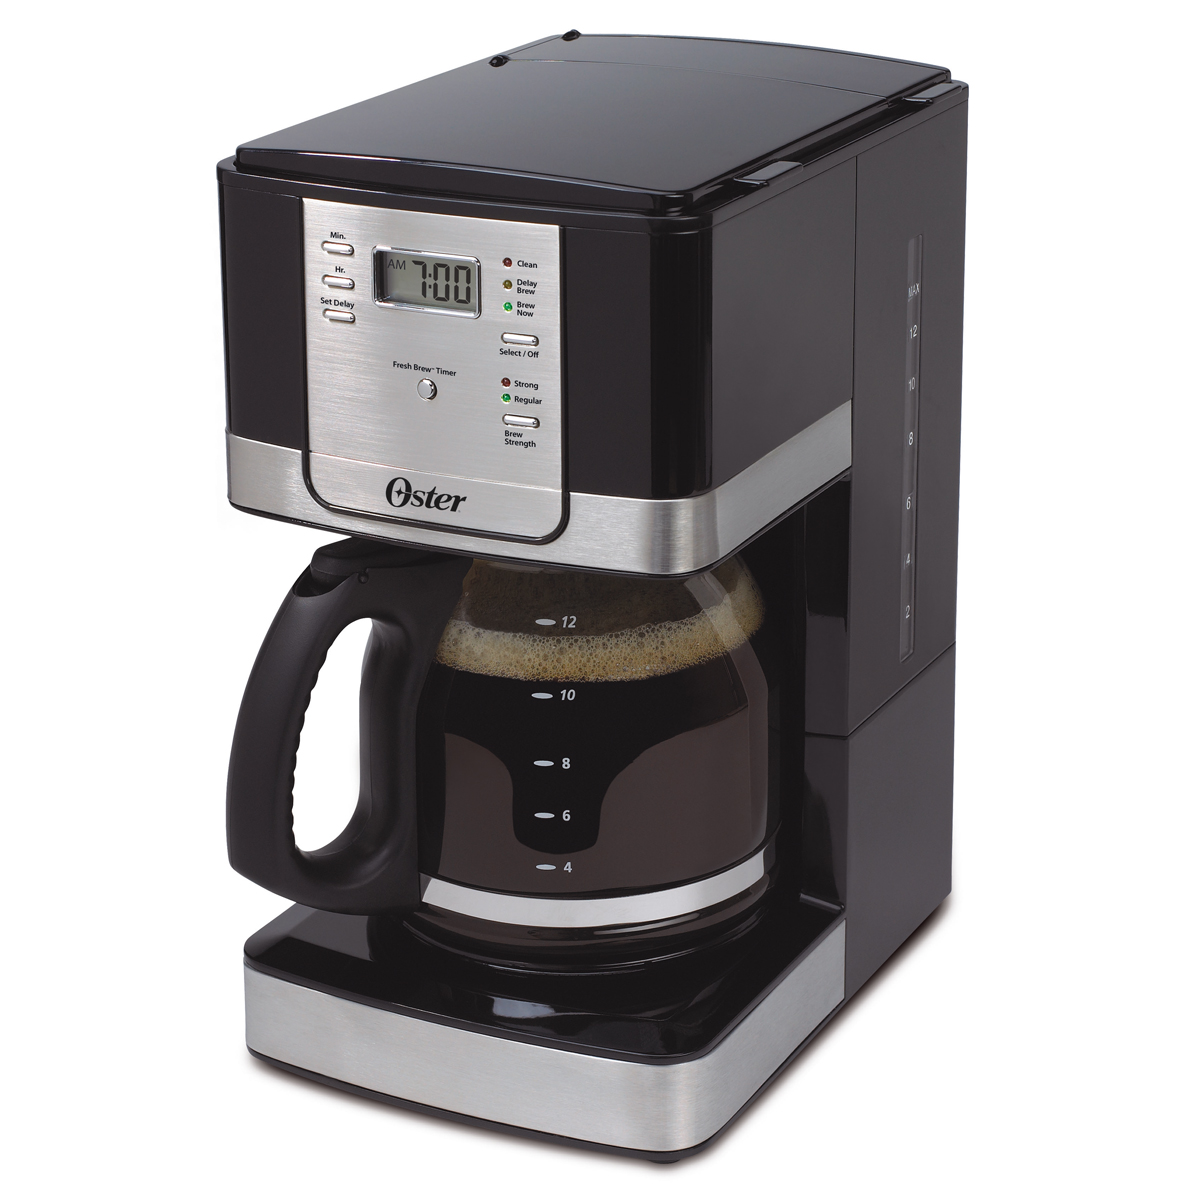 oster coffee maker cleaning instructions